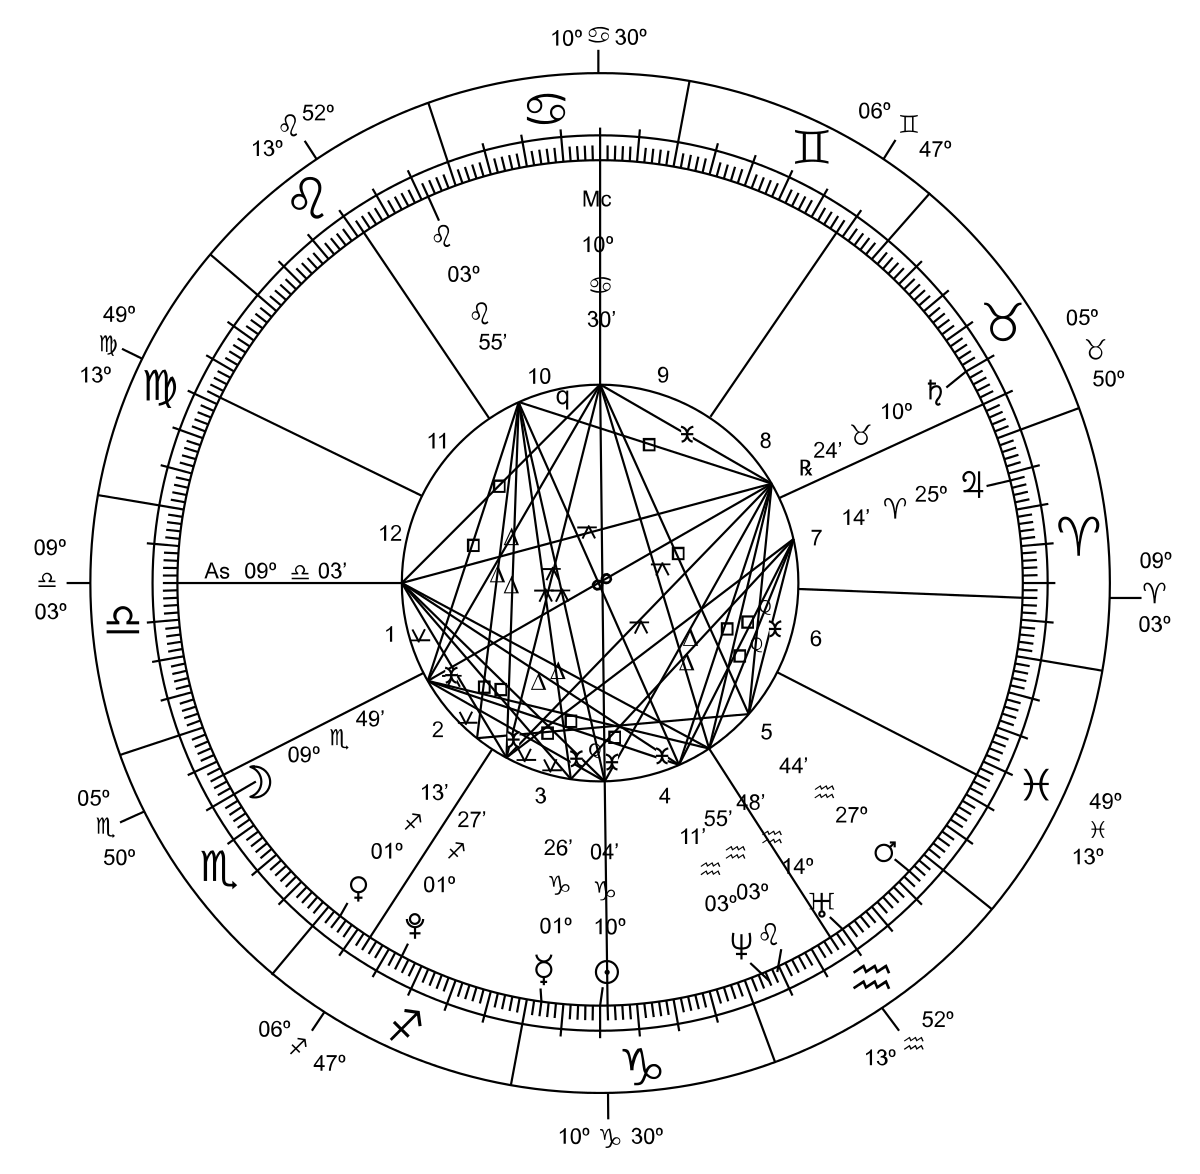 Birth chart symbols images free any chart examples sidereal and tropical astrology wikipedia living planets zodiac nvjuhfo images nvjuhfo Choice Image